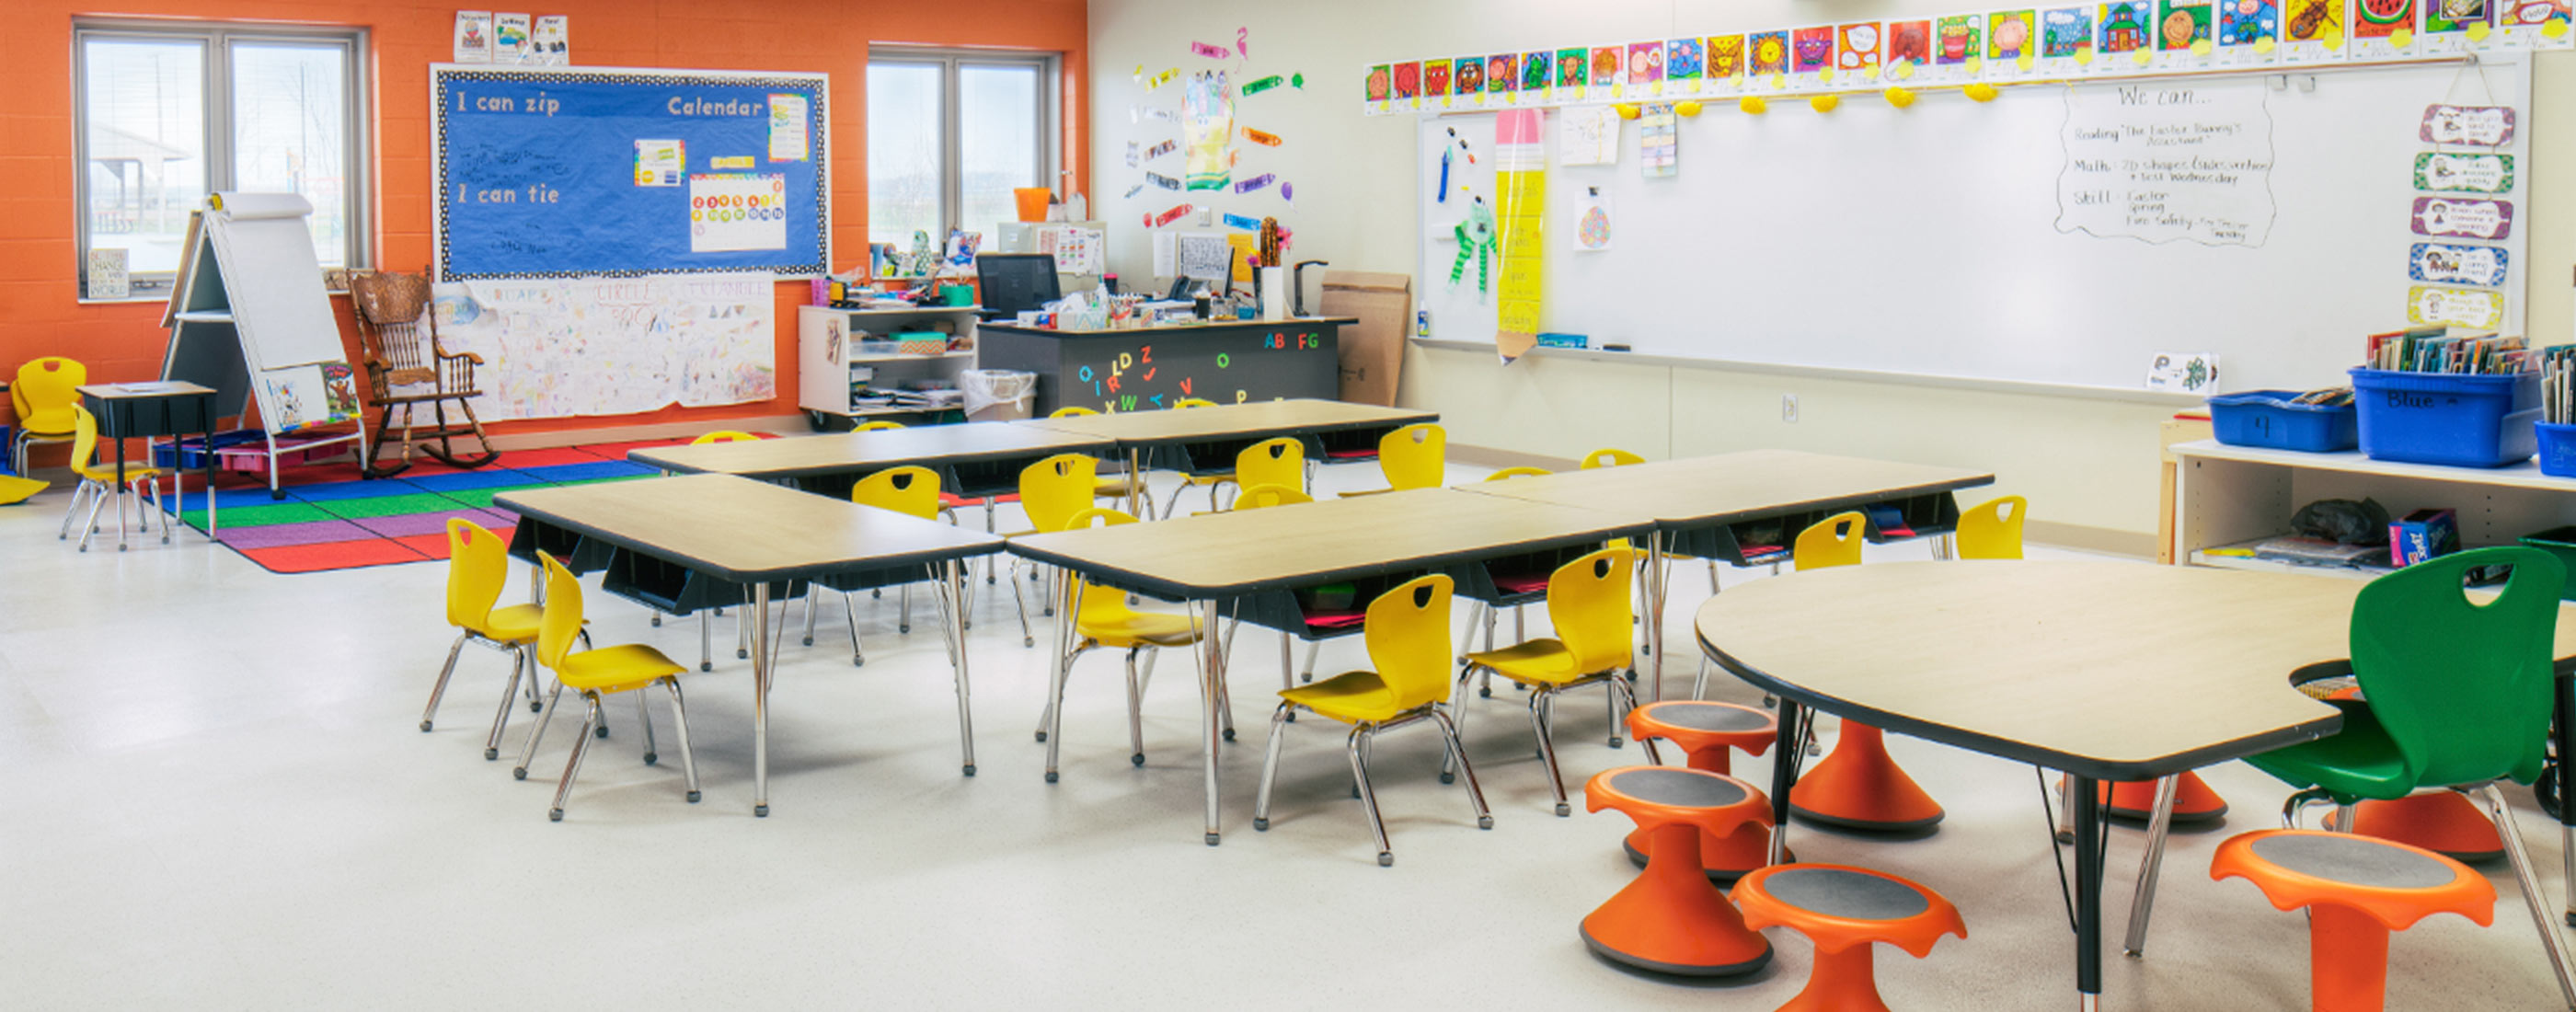 Reconfigurable furniture and bright colors create a flexible classroom in West Liberty-Salem Local School District's campus, designed by OHM Advisors.